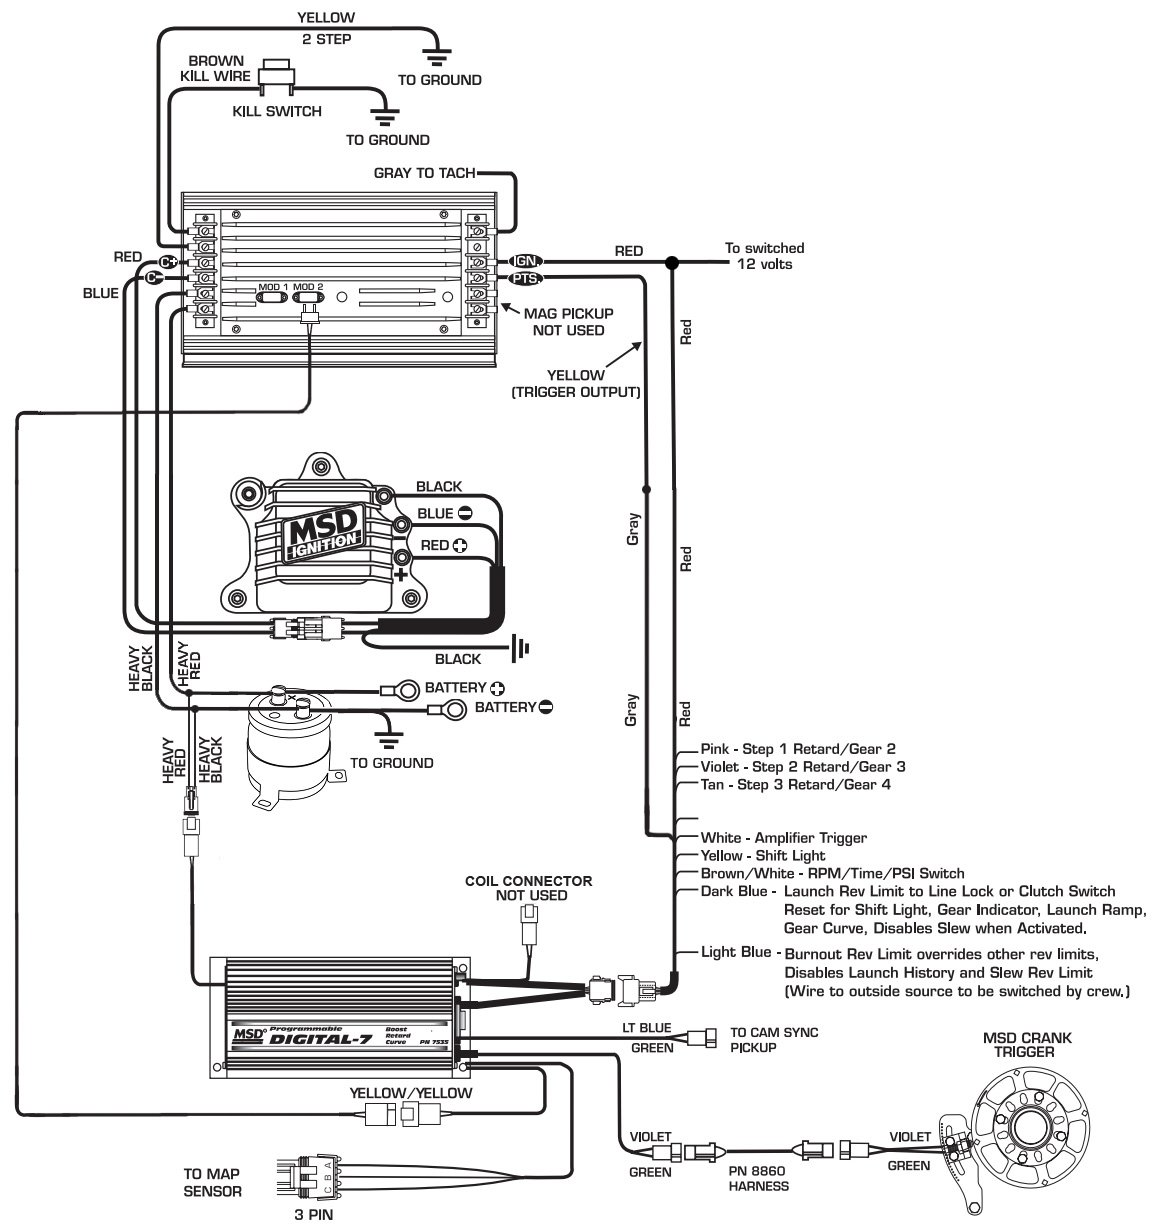 msd ignition wiring diagram wiring diagram and schematic design msd ignition 6a 6200 wiring diagrams base